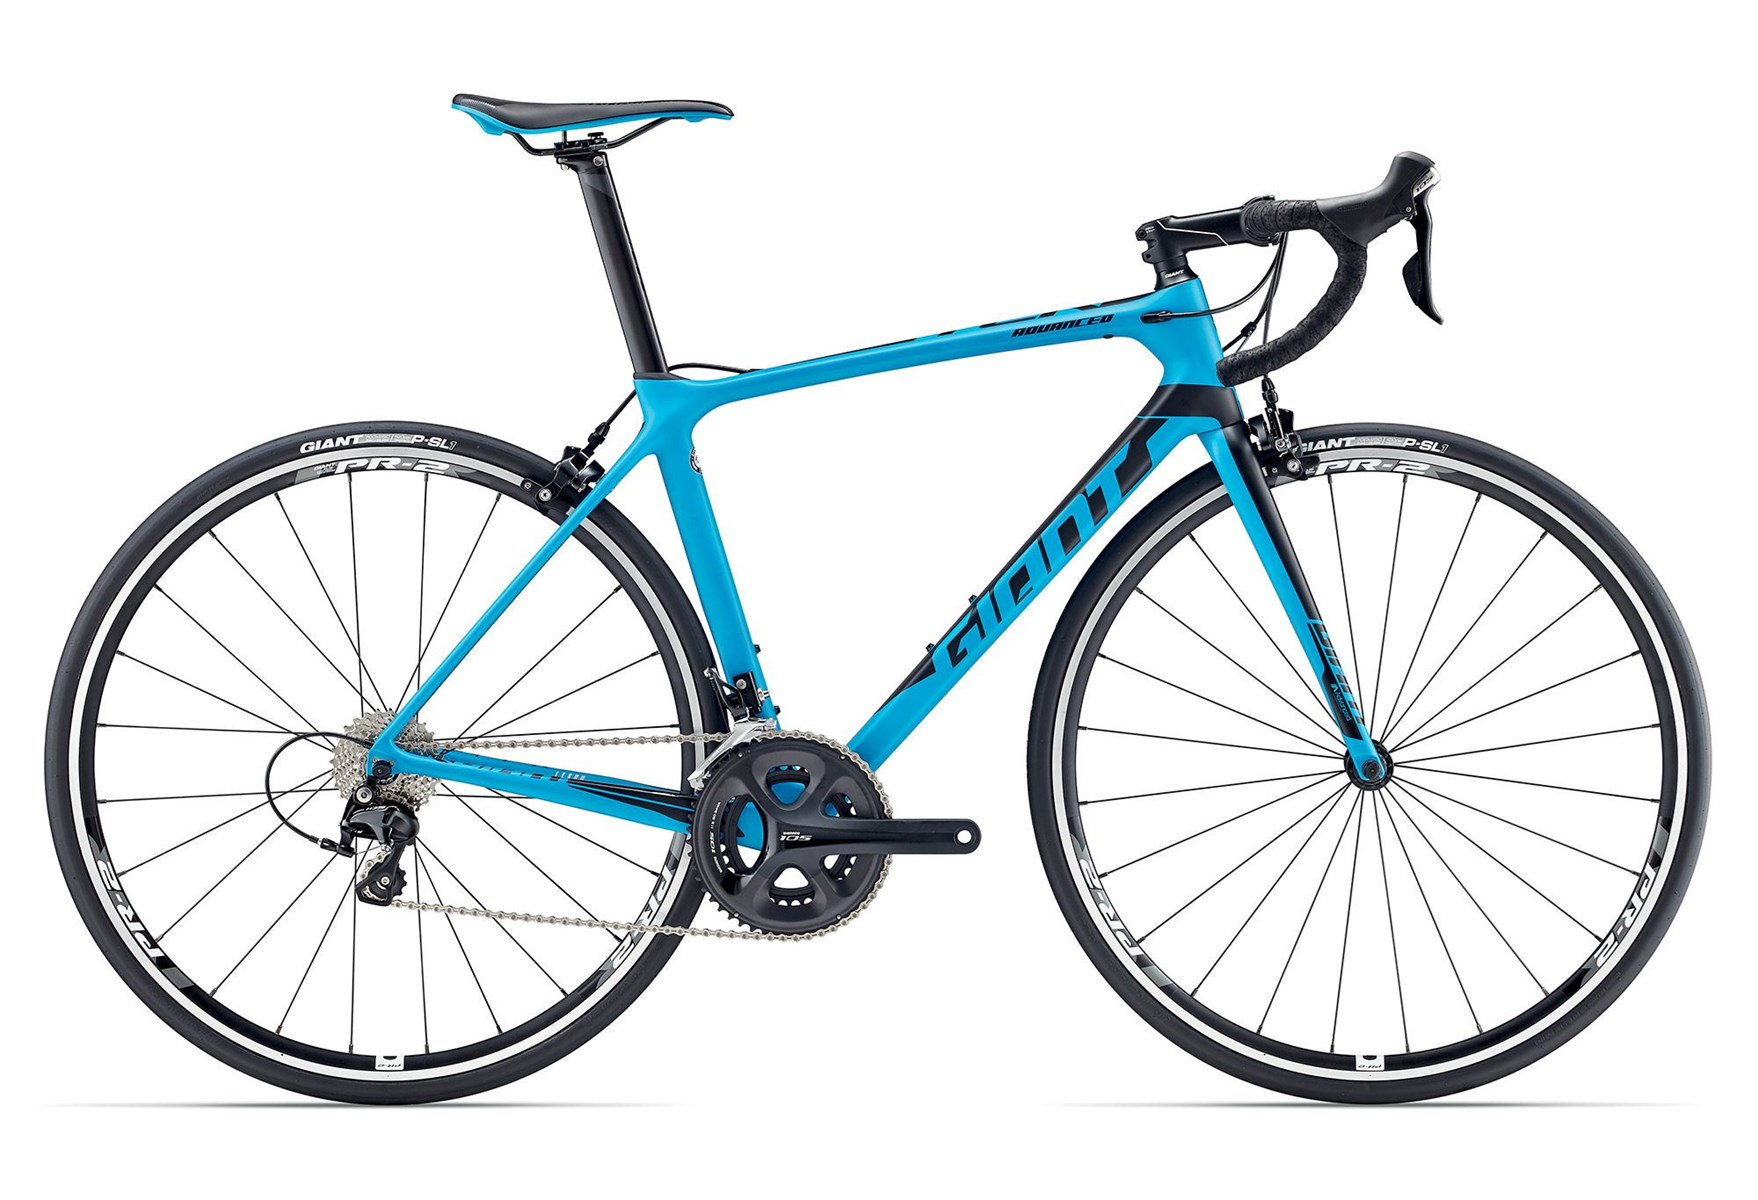 Giant TCR Advanced 2 Carbon Road Bike £1,399.00